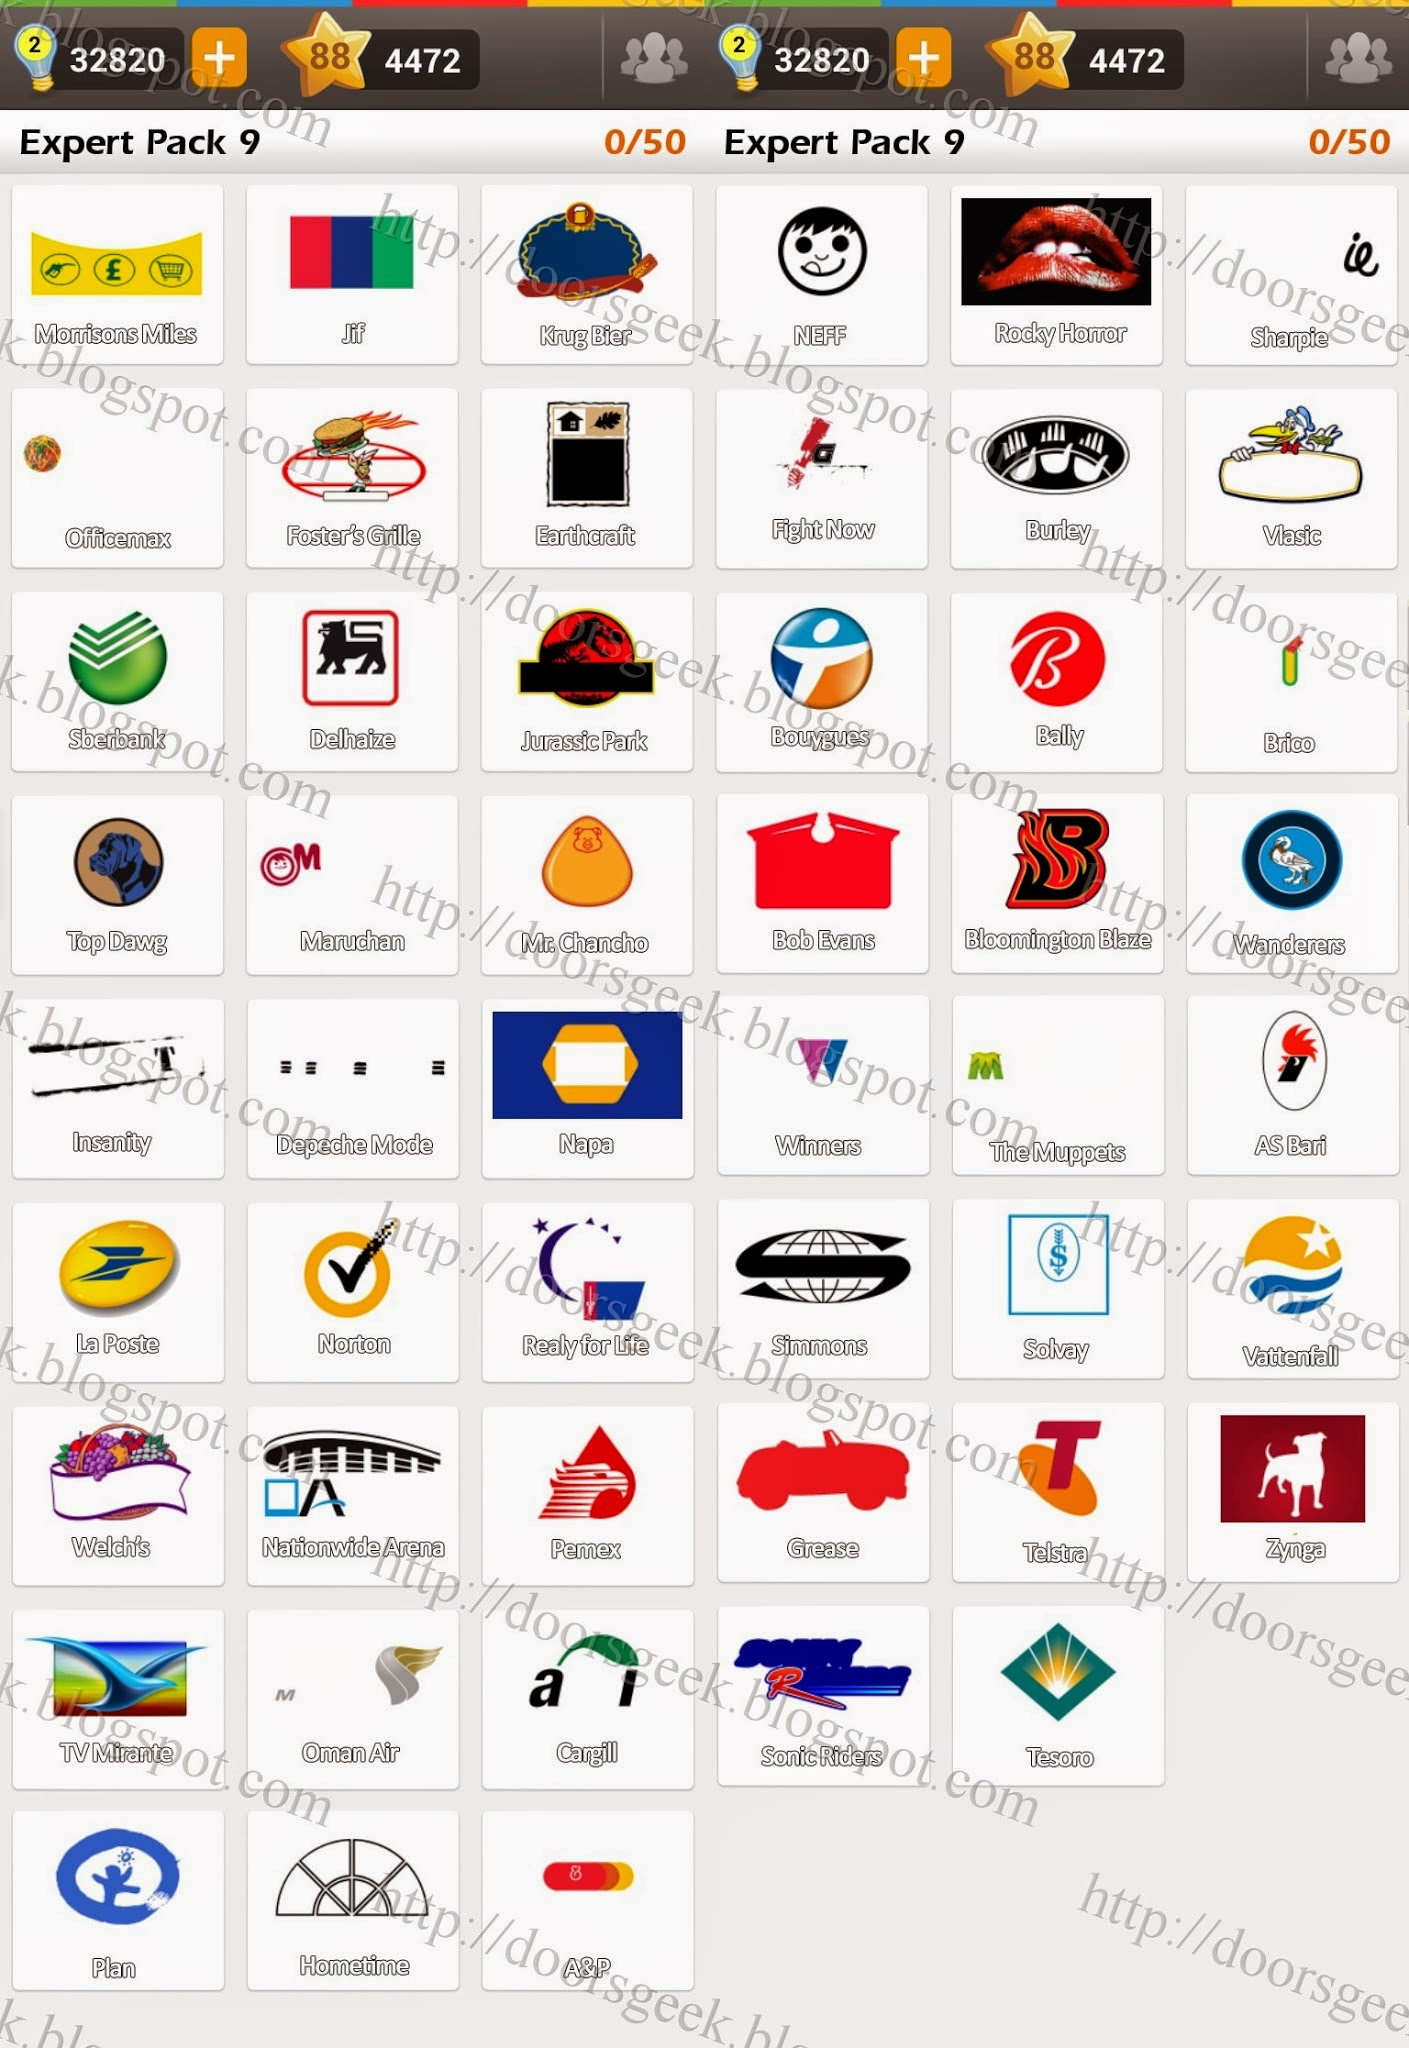 Logo game guess the brand bonus cars chainimage - Answers In Expert Pack 9 Are